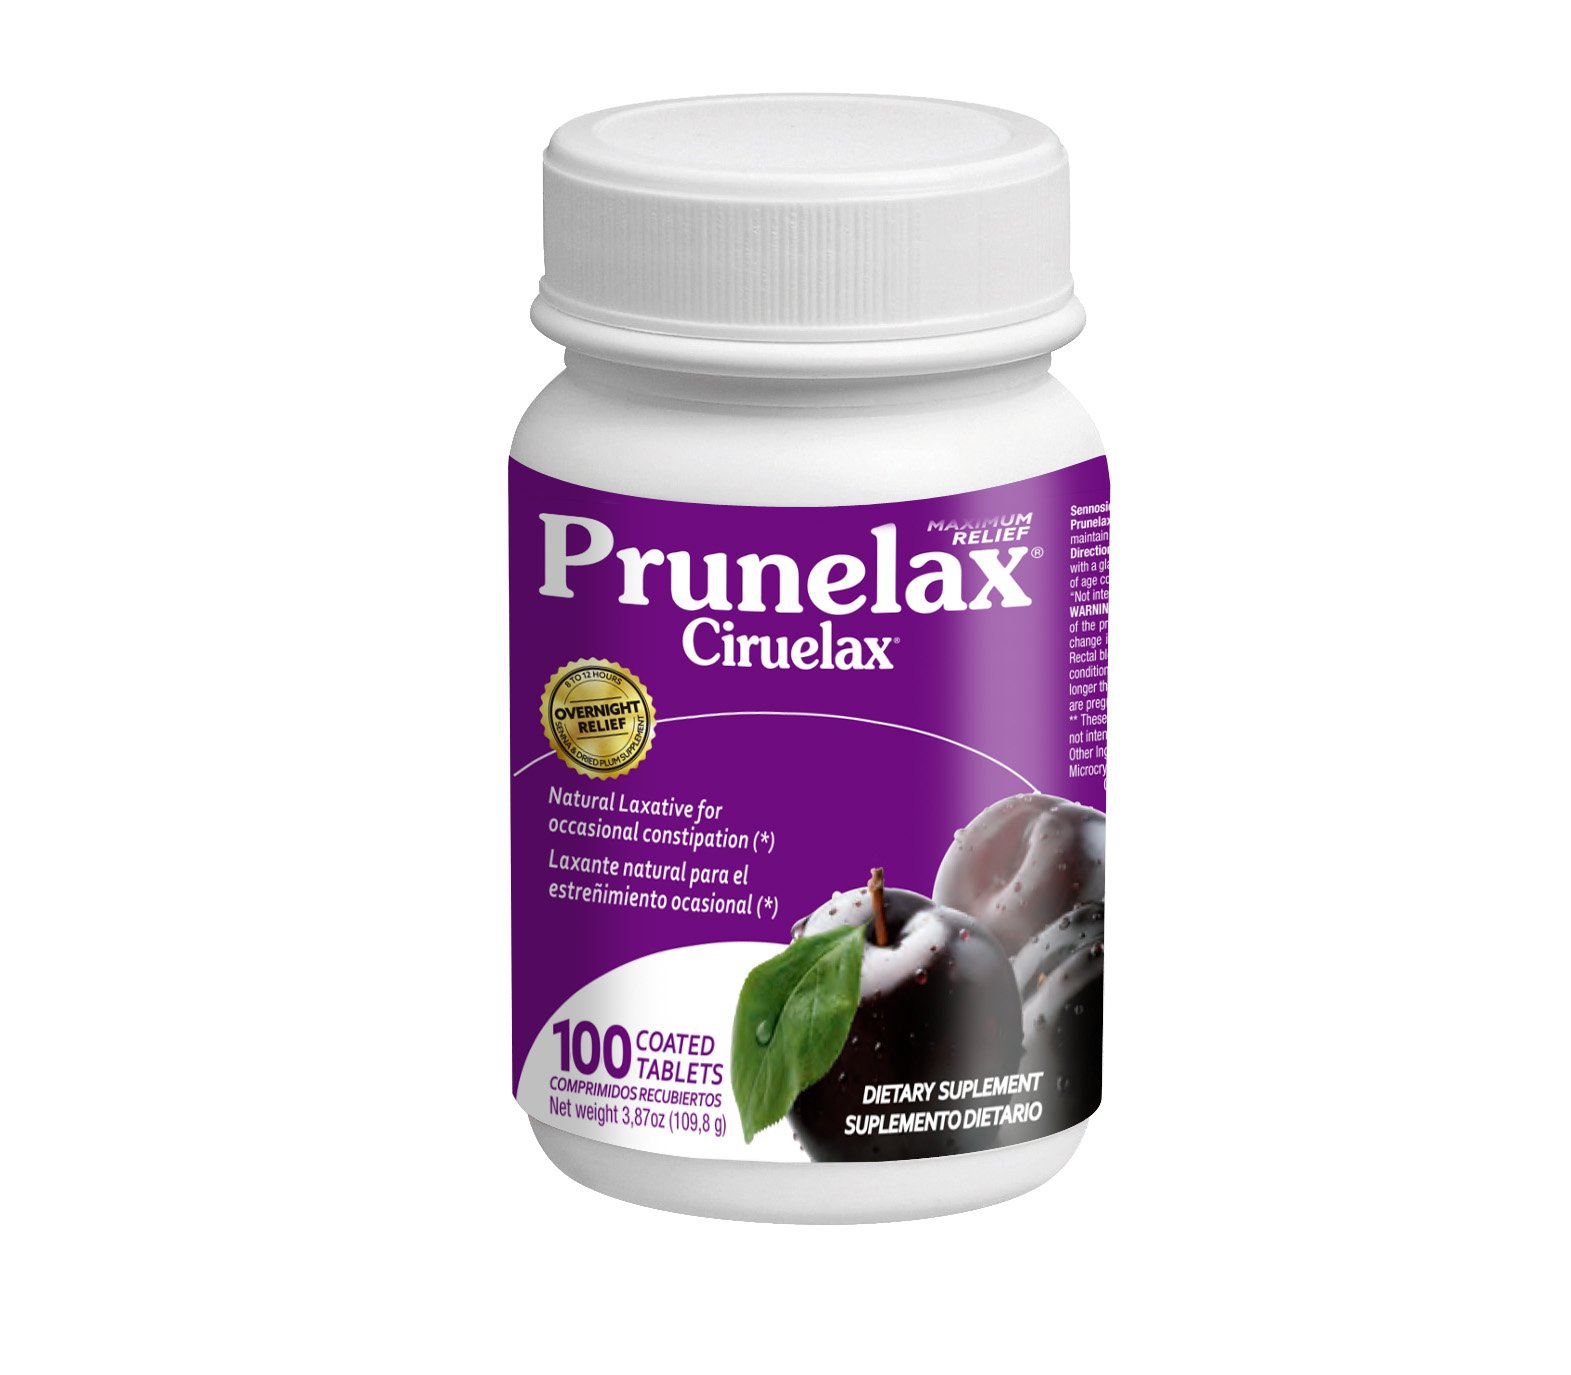 Prunelax Maximum Relief Laxatives, 100 Count